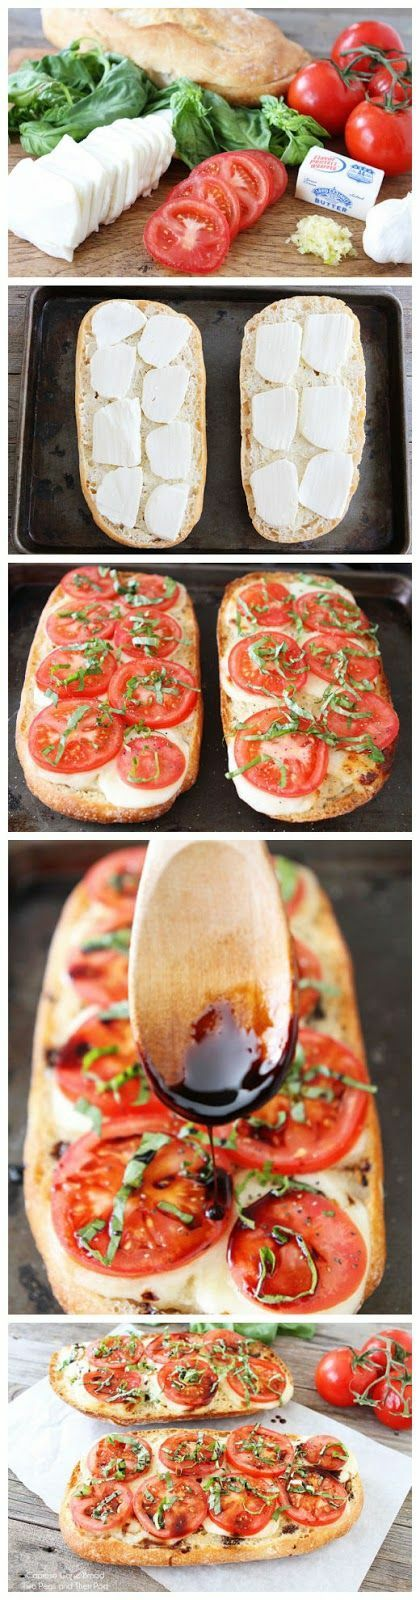 So delicious! Great as a meal with a bowl of salad. I toast bread a little first, then rub a garlic clove on them while warm. I actually throw the tomato slices on stove to cook out some of the juices so it won't be so soggy on the cheese. Then I layer it all on and do a final bake.